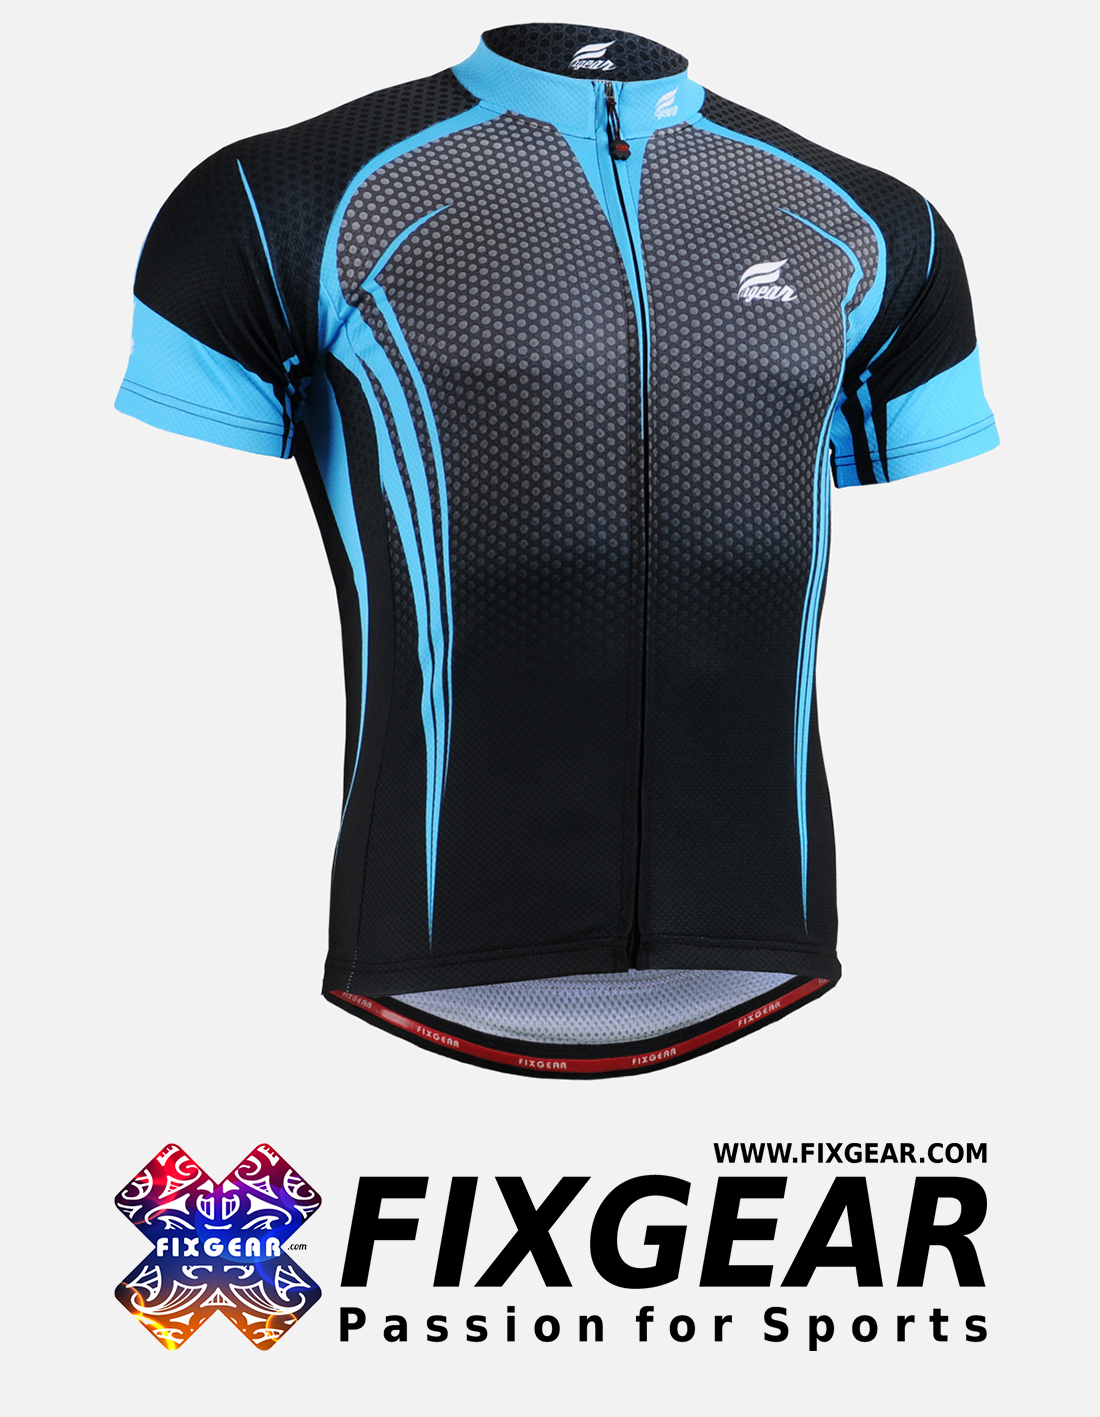 FIXGEAR CS-5602 Men s Cycling Jersey Short Sleeve 2bb604fcd